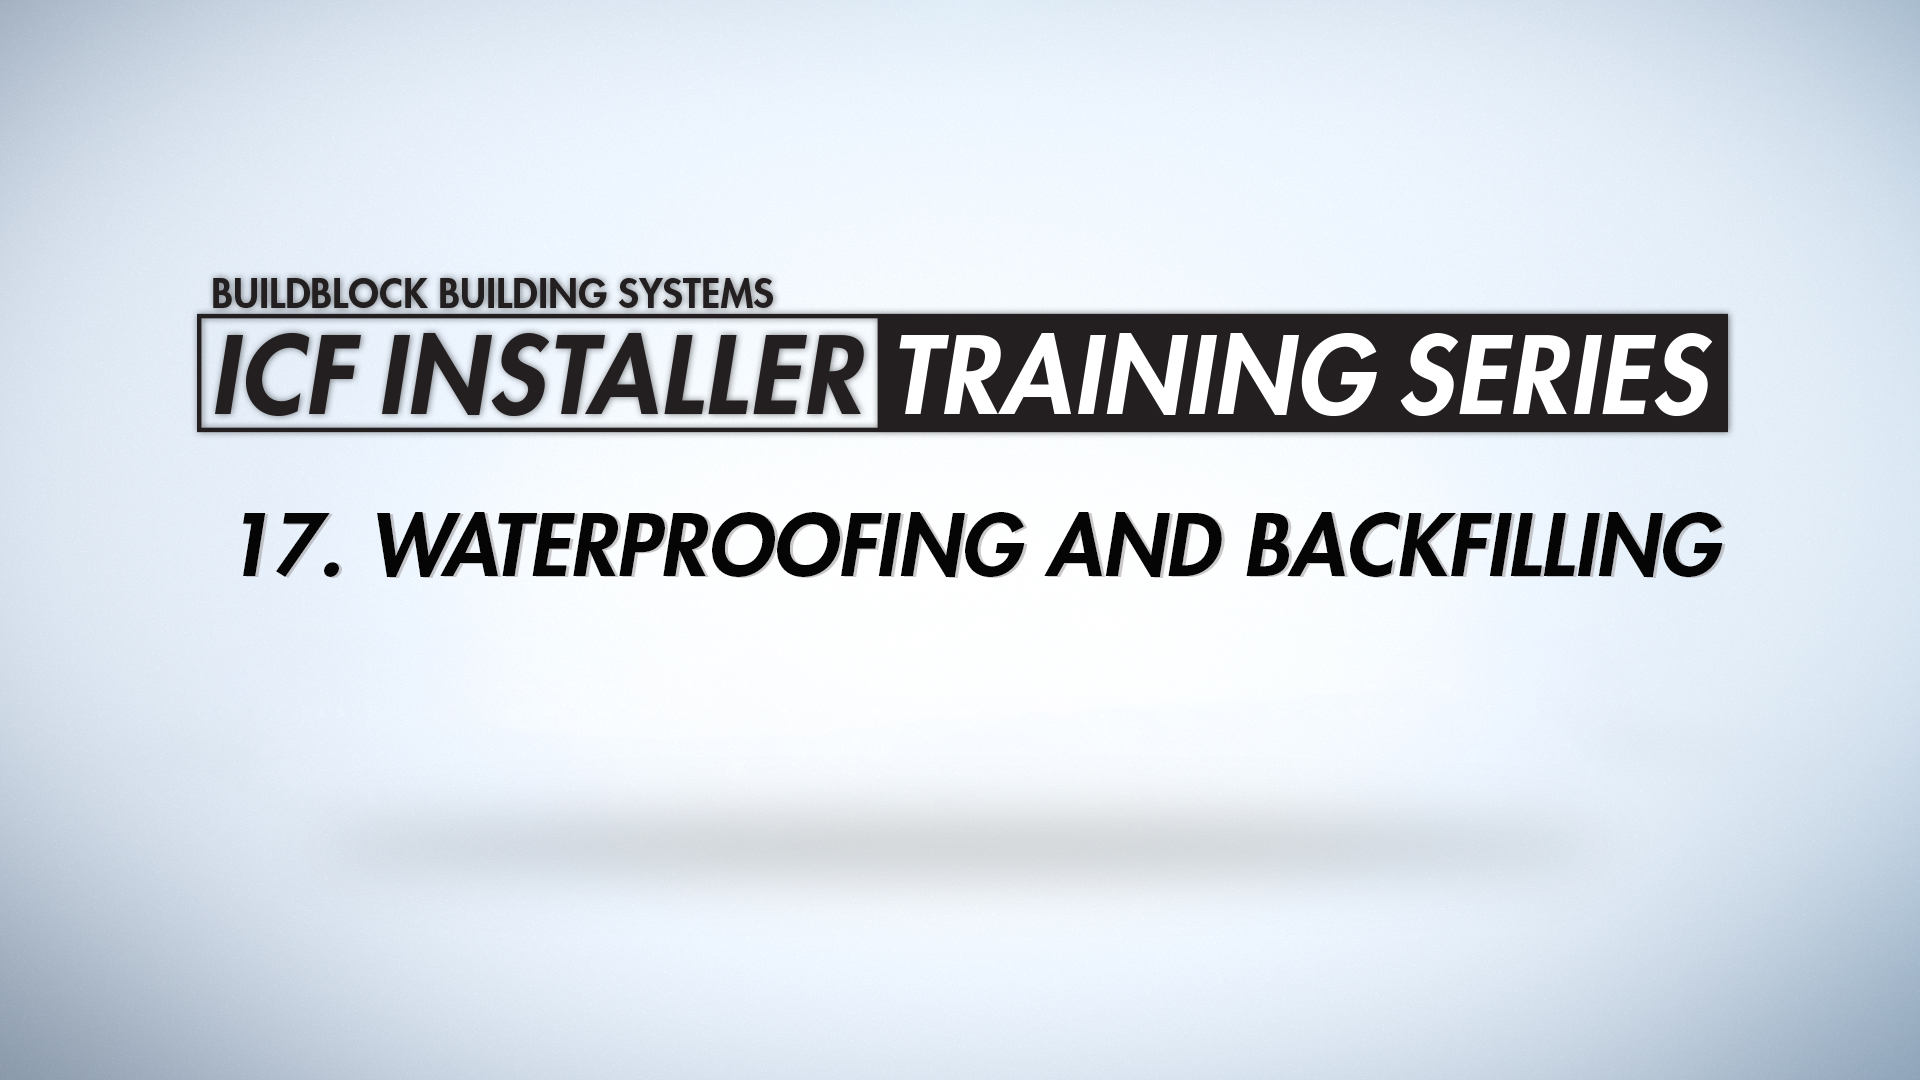 waterproofing and backfilling